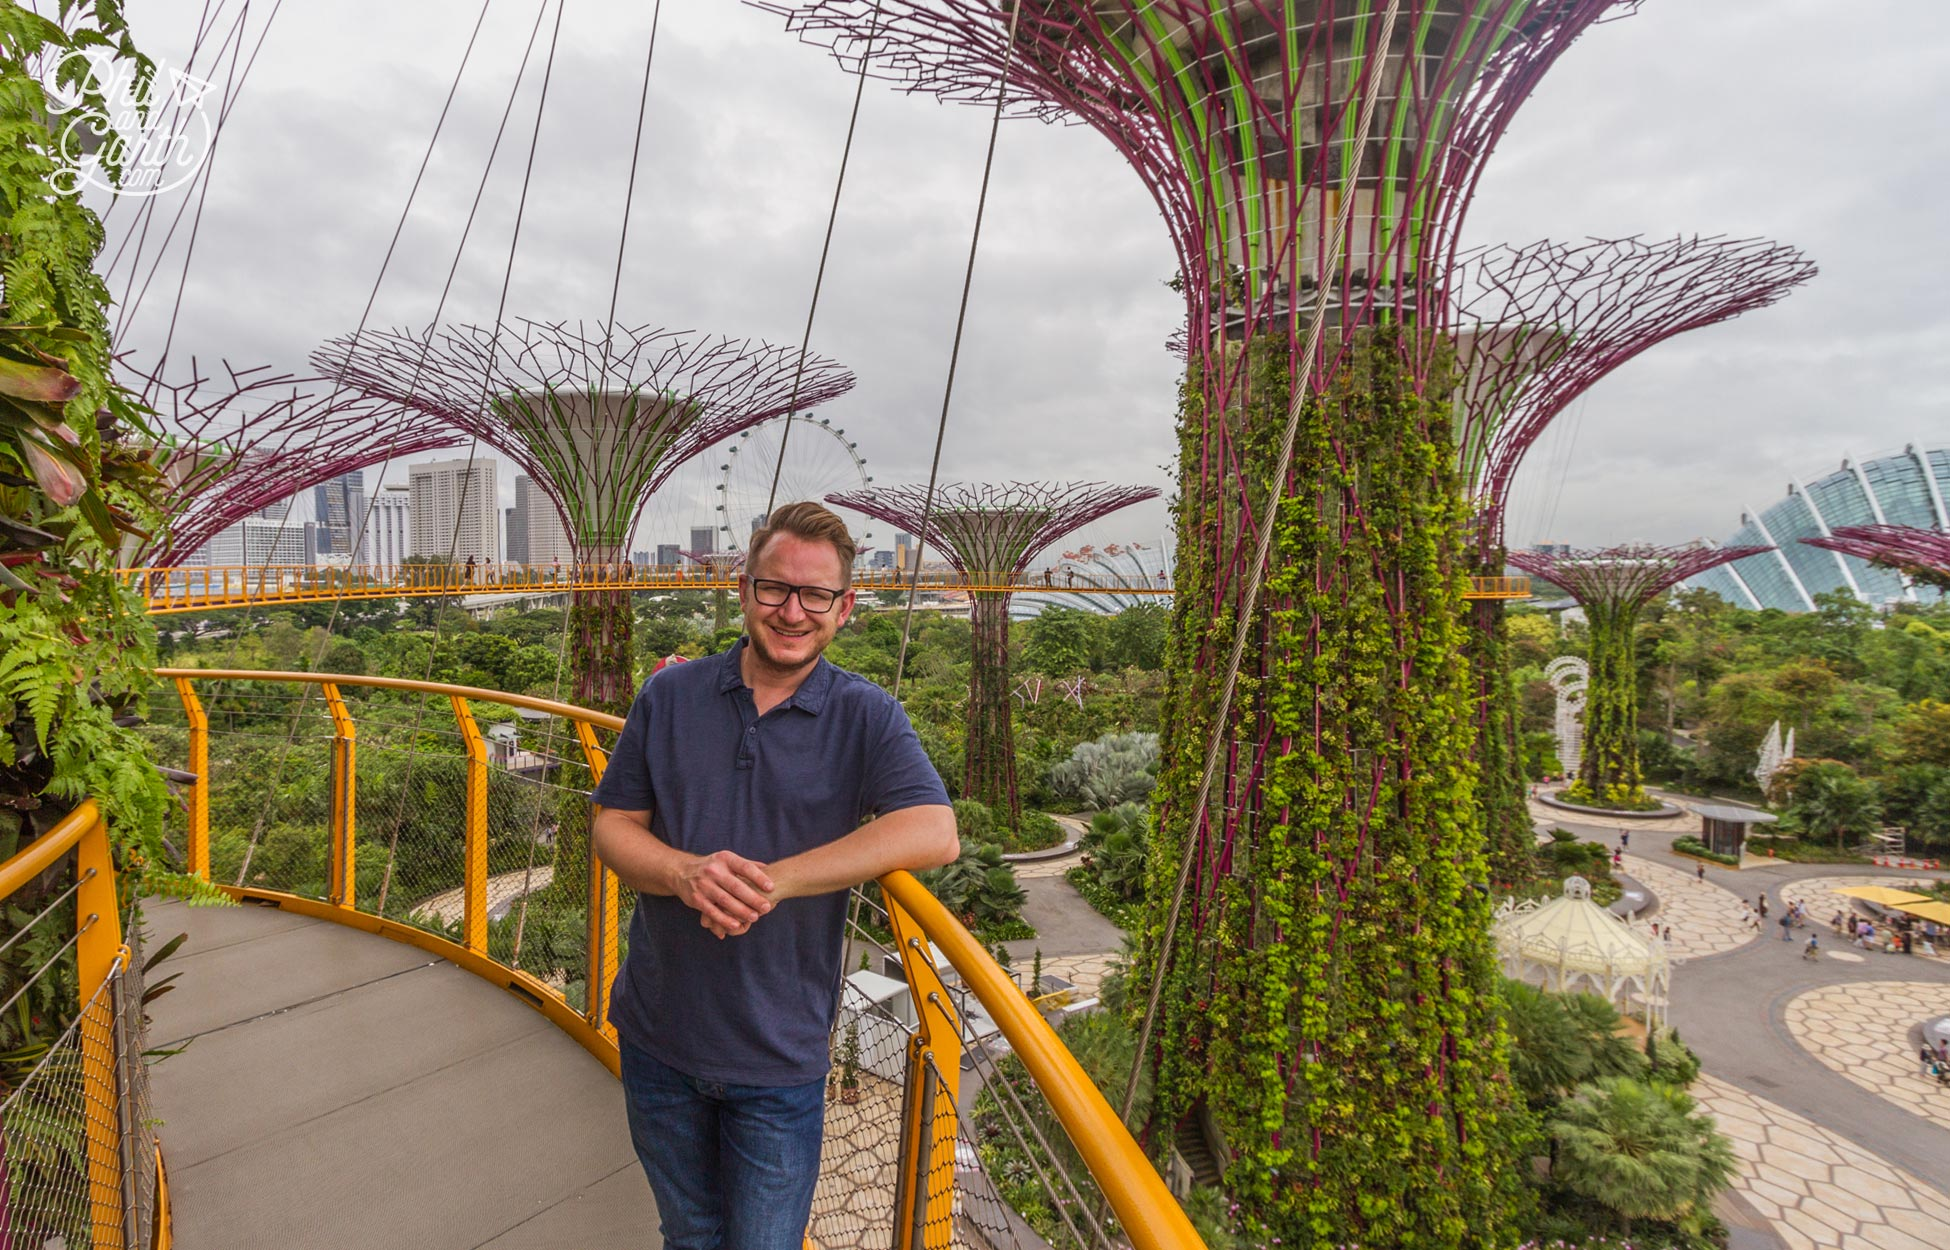 Garth on the Supertree Skyway - There's a small charge to walk up high